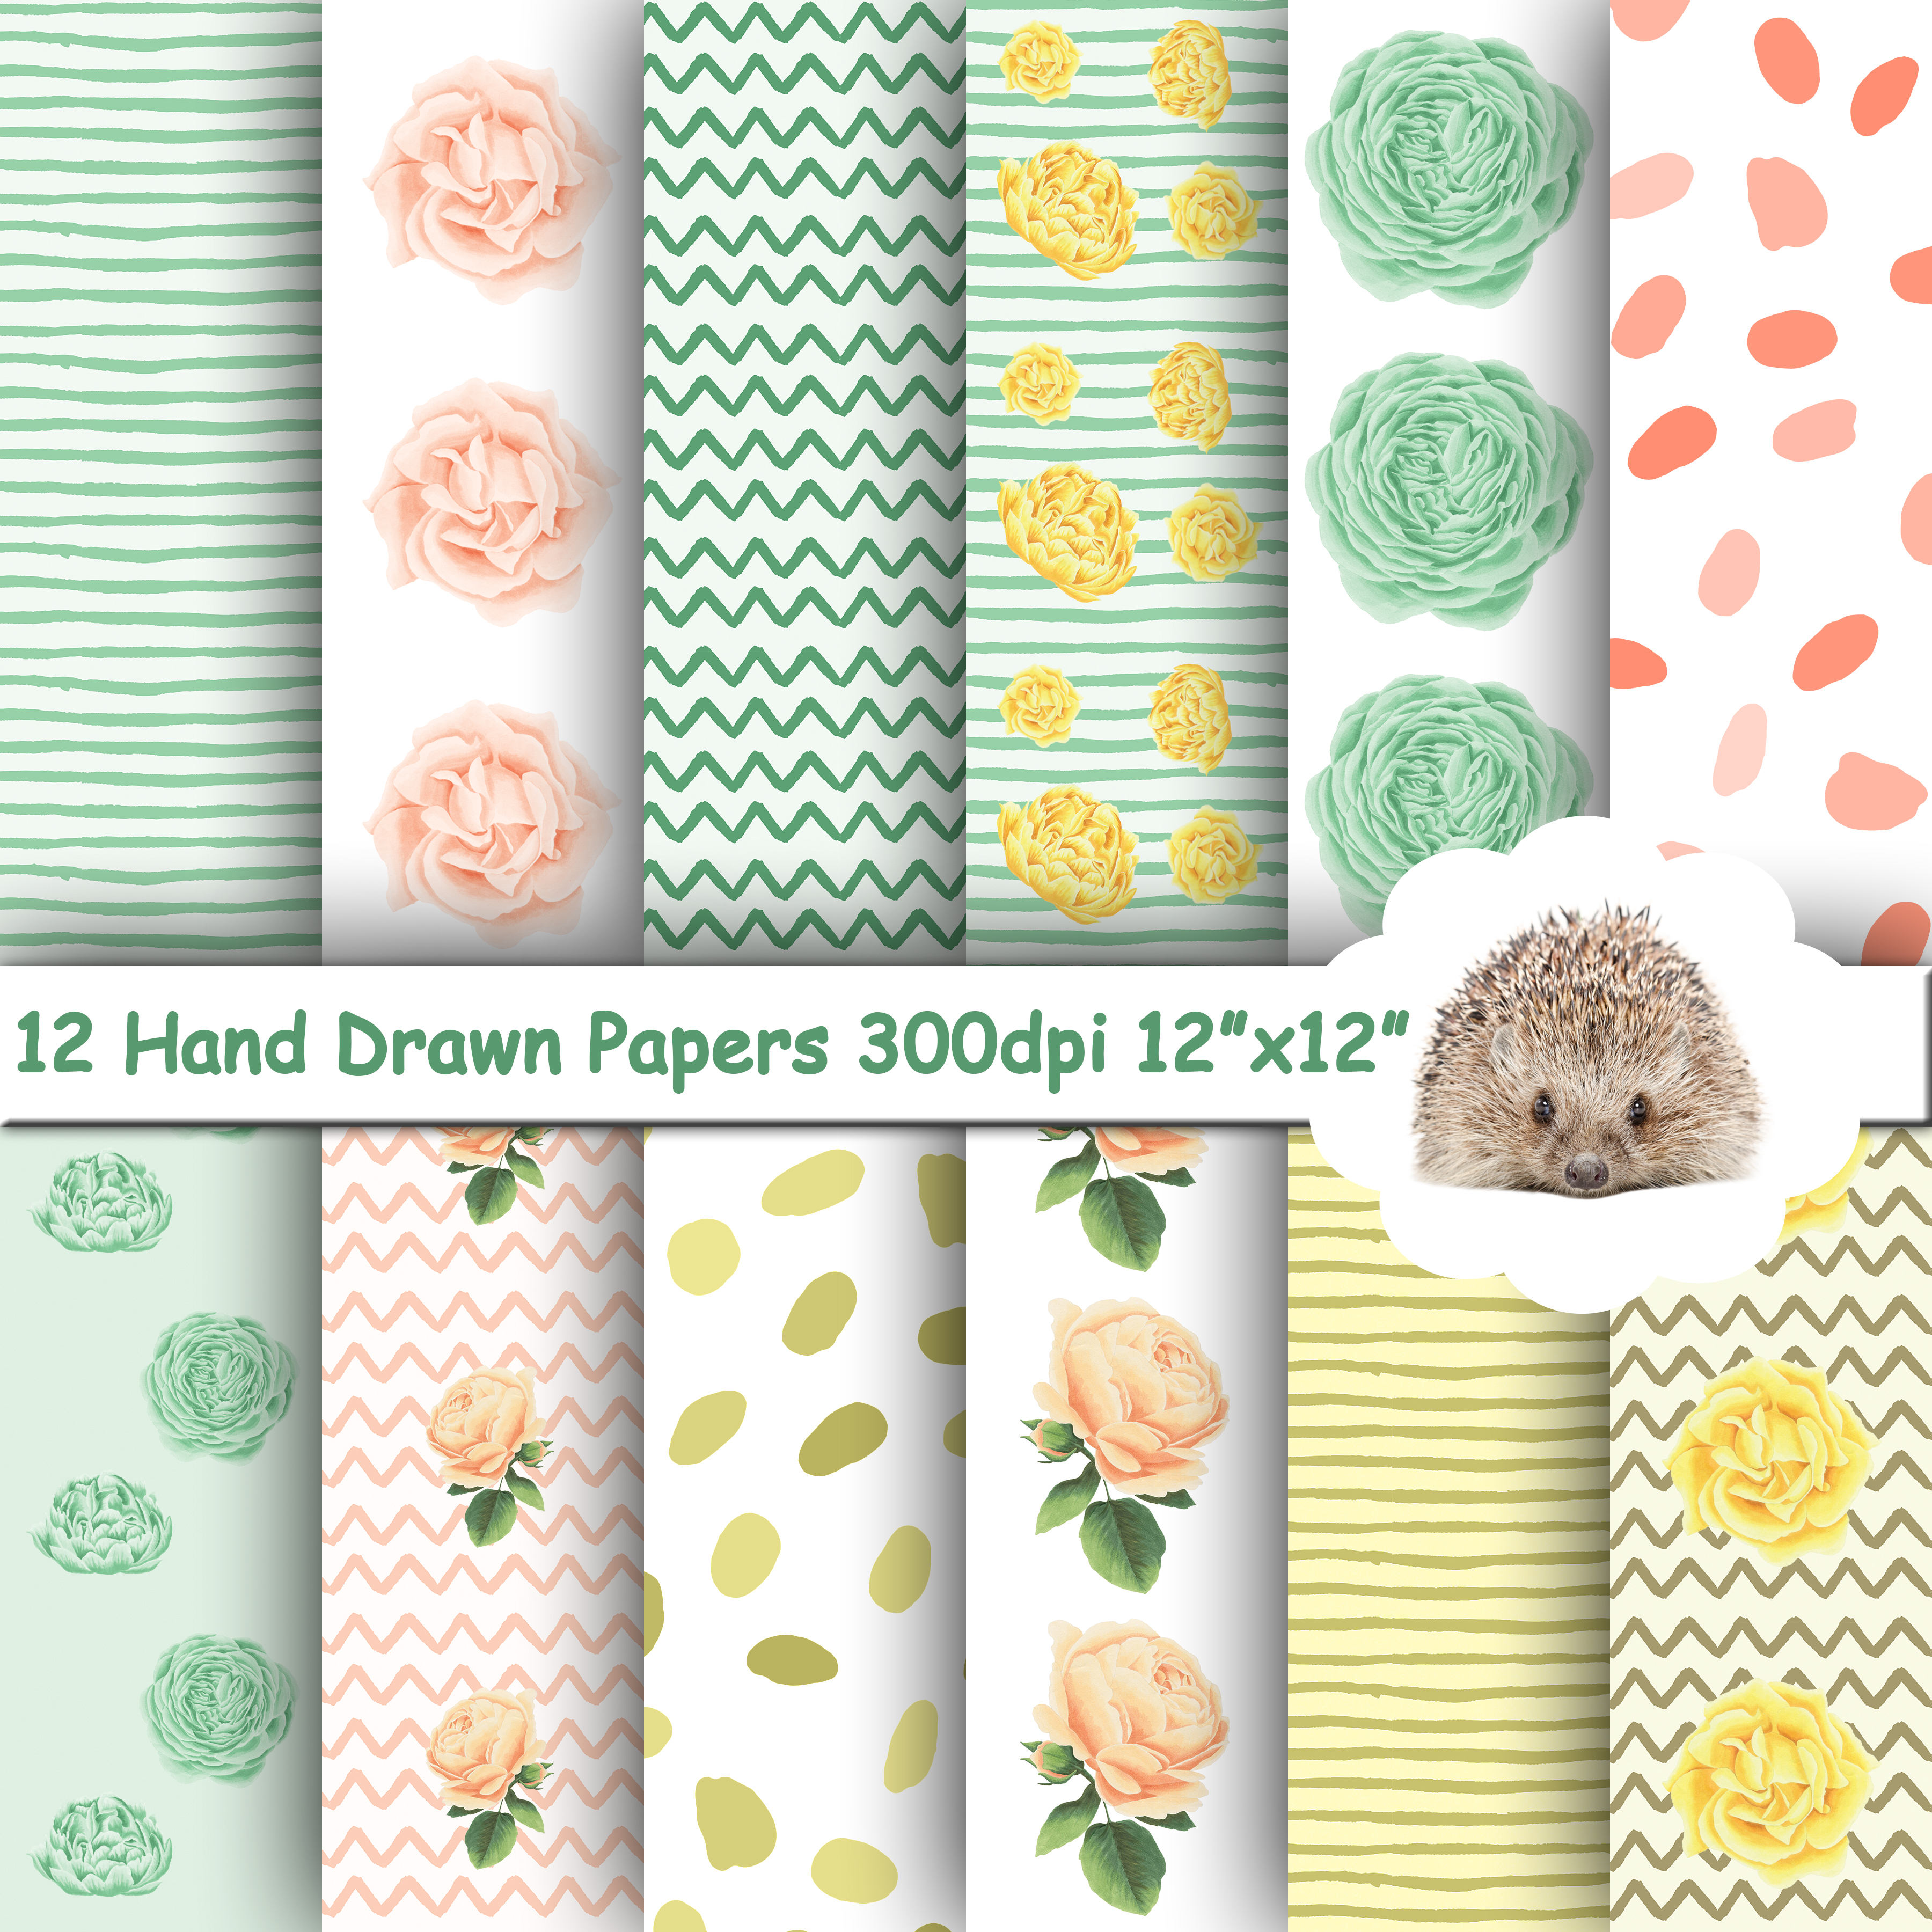 12 Hand Drawn Patterns and Roses Papers / Backgrounds example image 1